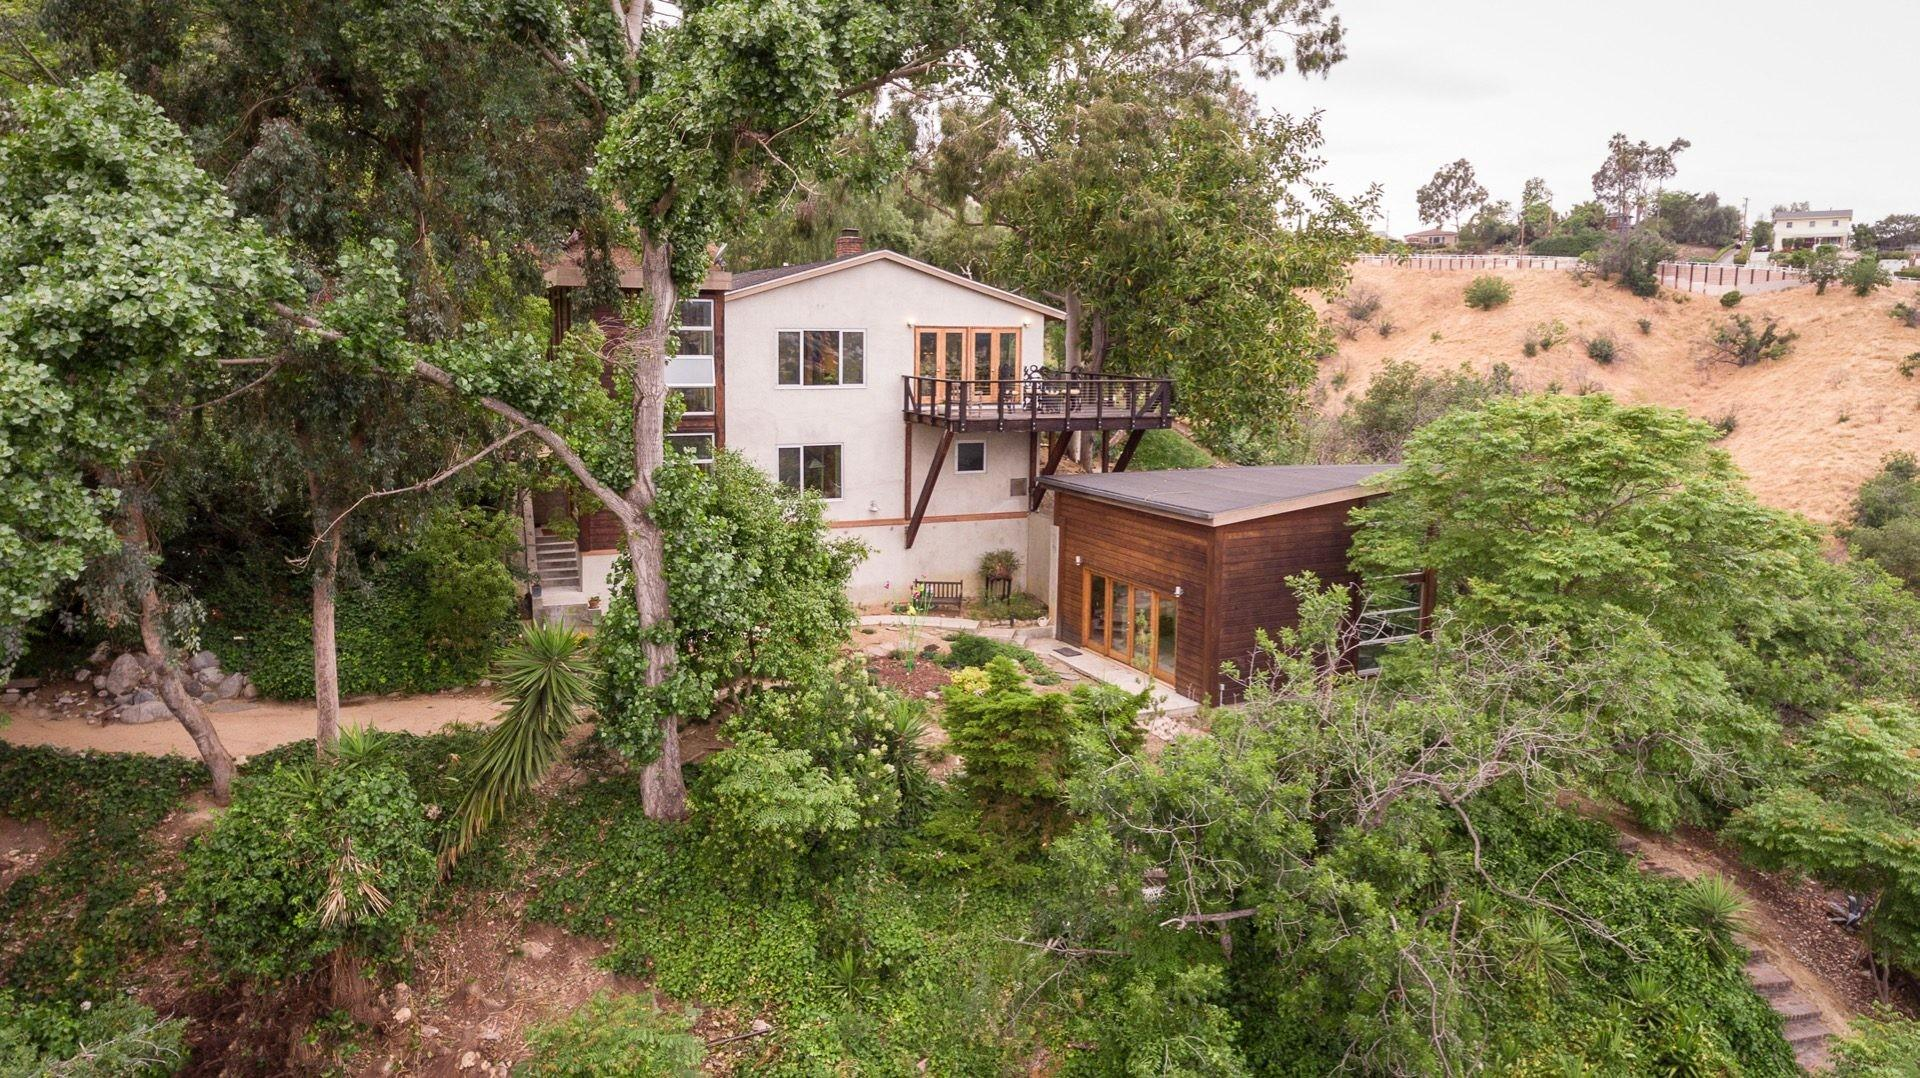 Luxurious Rustic Canyon Log Cabin Wild Past Lists